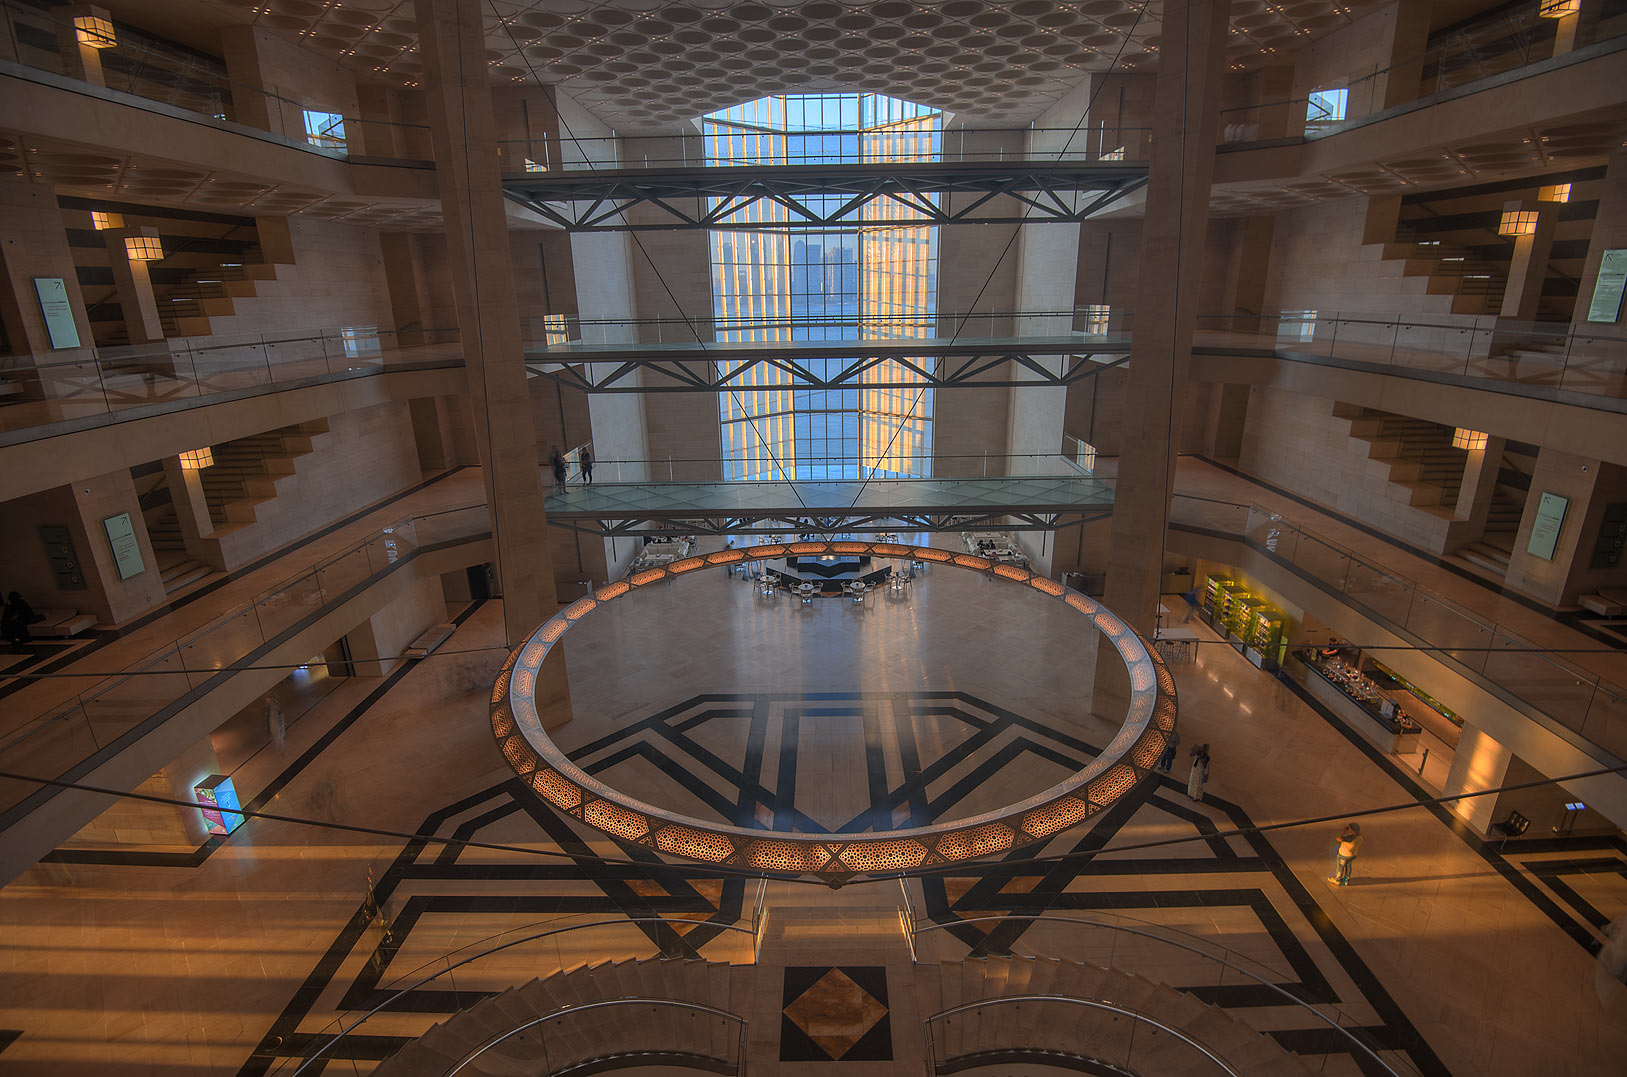 Grand hall of Museum of Islamic Art, view from the second floor. Doha, Qatar